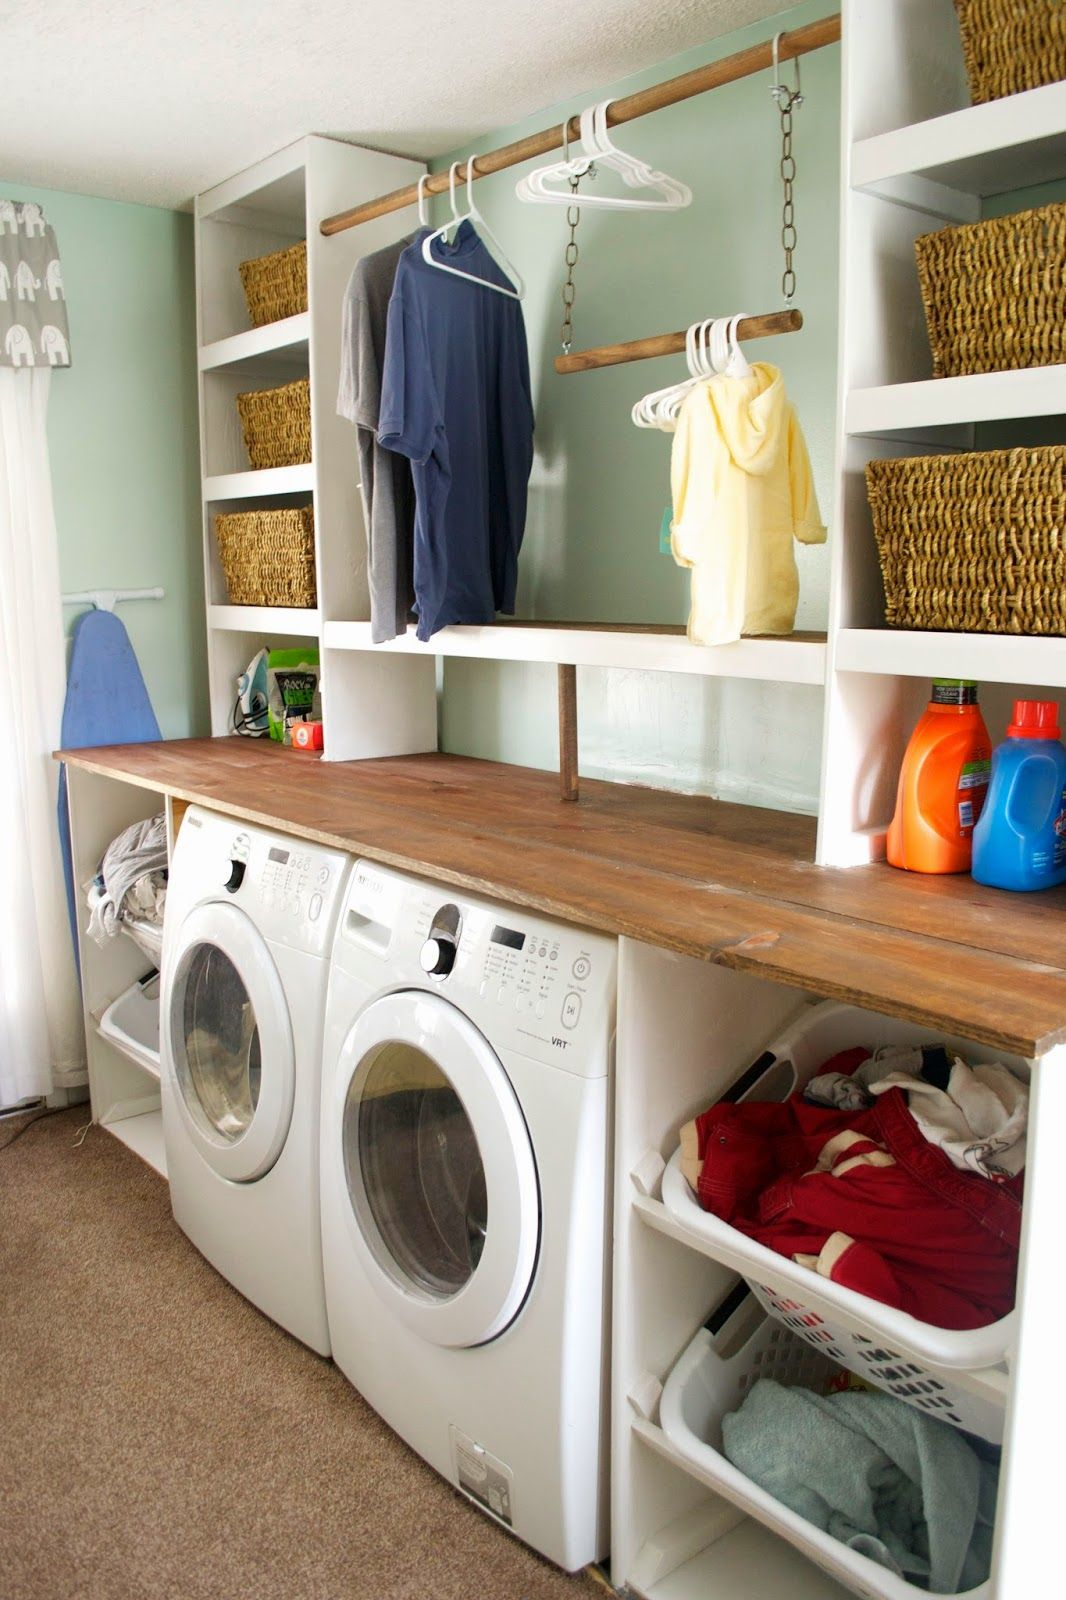 Photo of Built-in Laundry Unit with Shelving